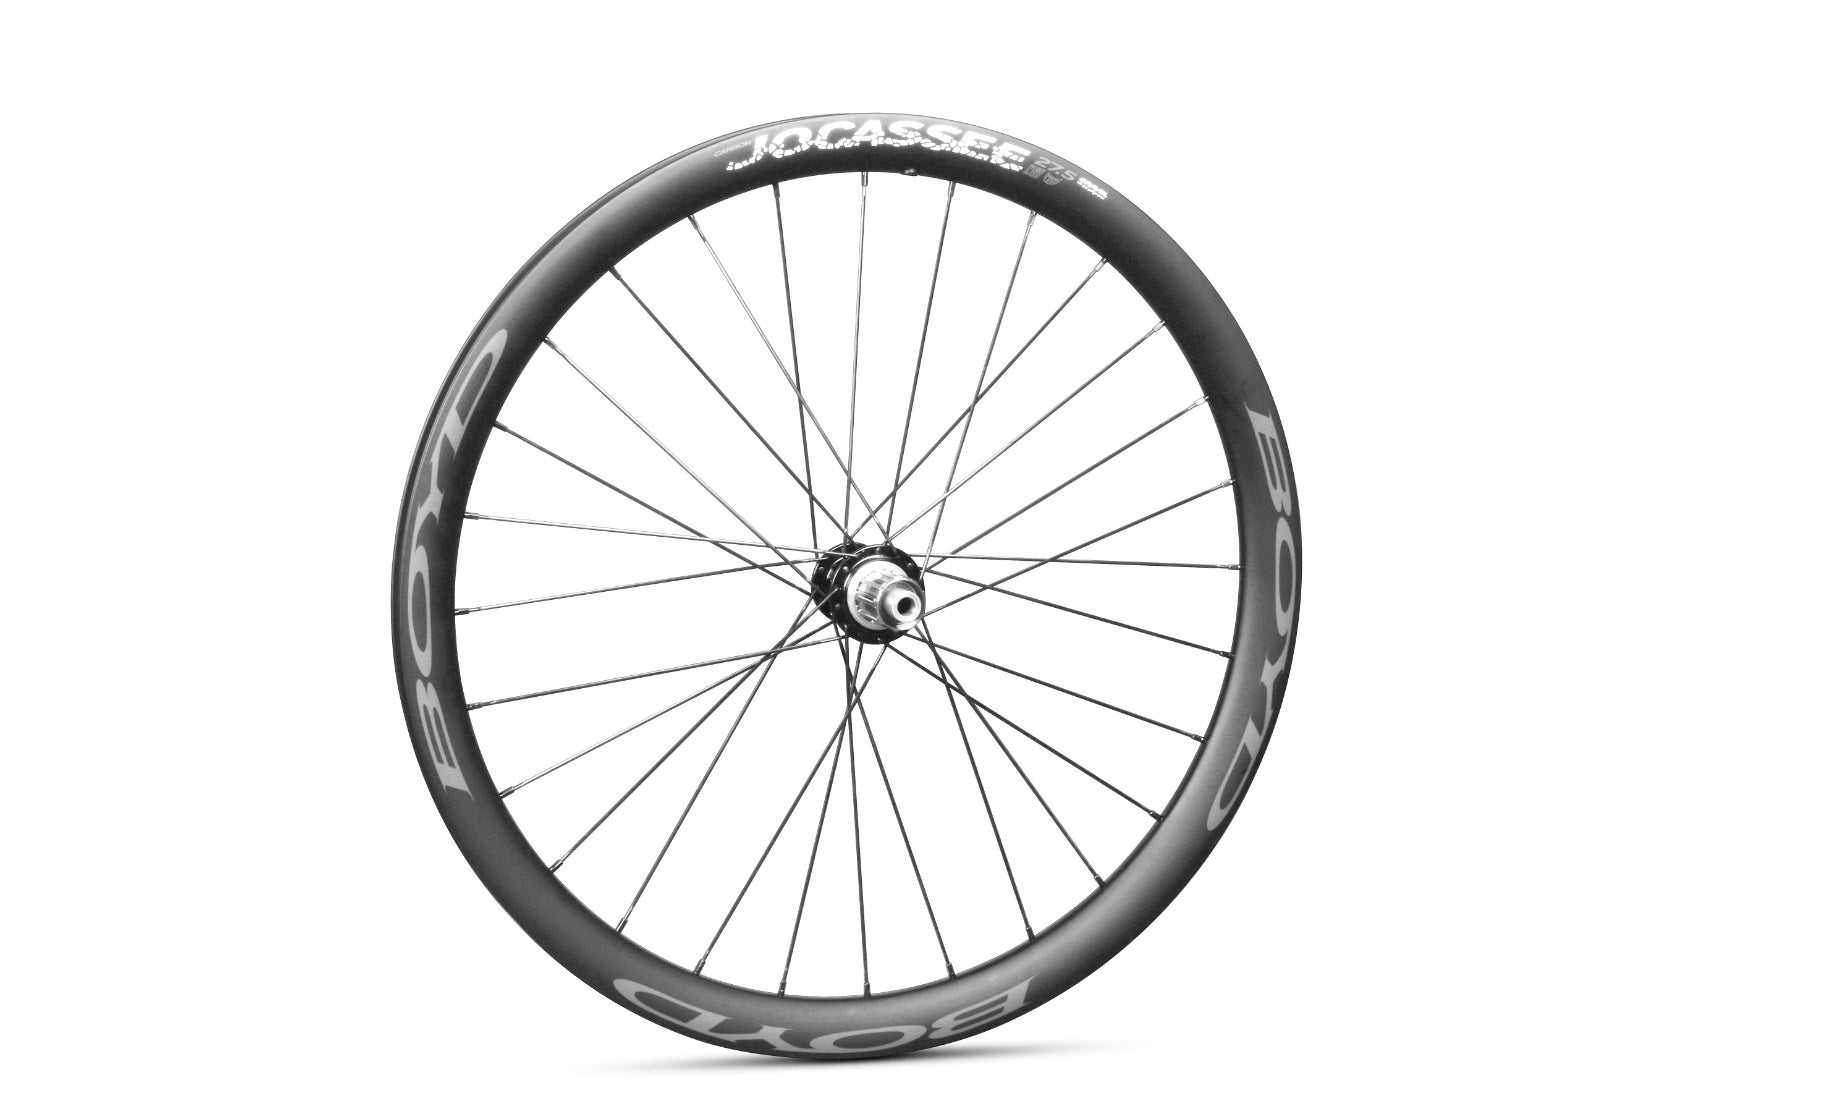 Jocassee-Rear-Wheel27.5